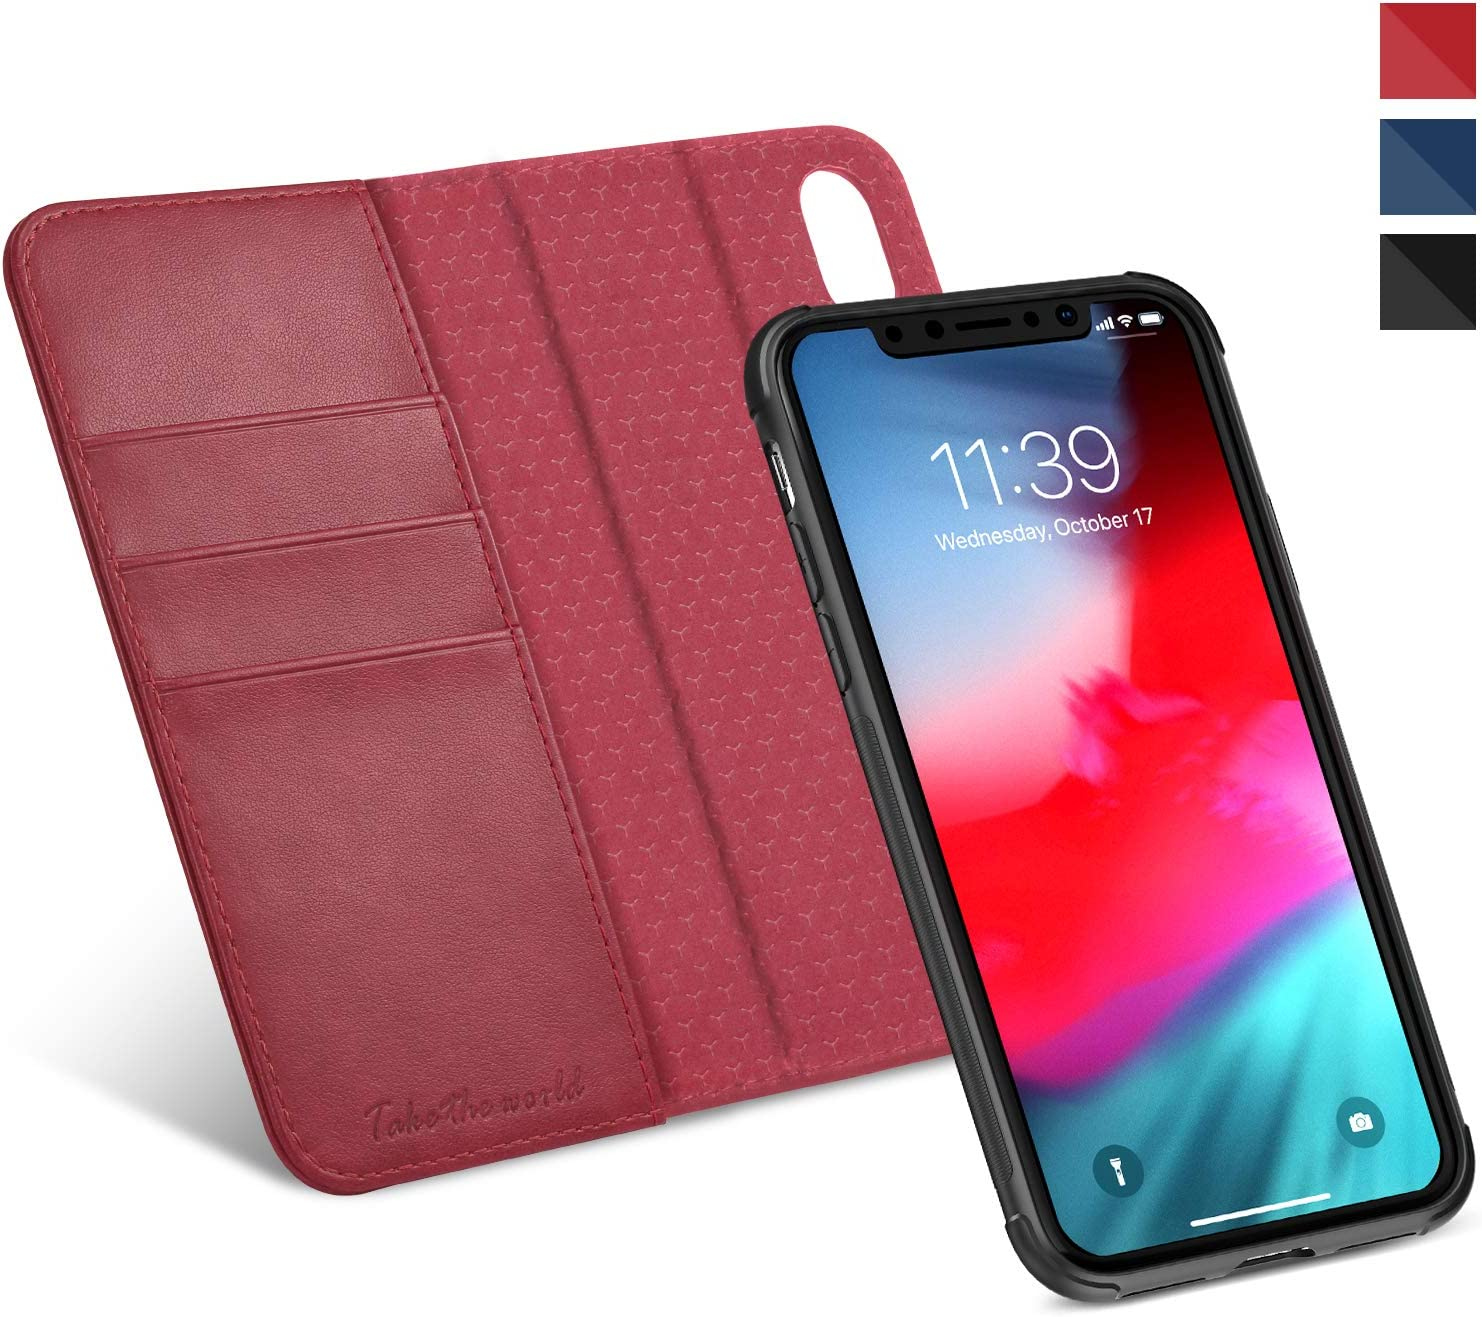 TUCCH iPhone XR Wallet Case, iPhone XR Detachable Case, [2 in 1] [RFID Blocking] PU Leather Flip Case with Card Slot, Stand Holder, [Magnetic Closure][Notebook]Compatible with iPhone XR 6.1 Inch, Red